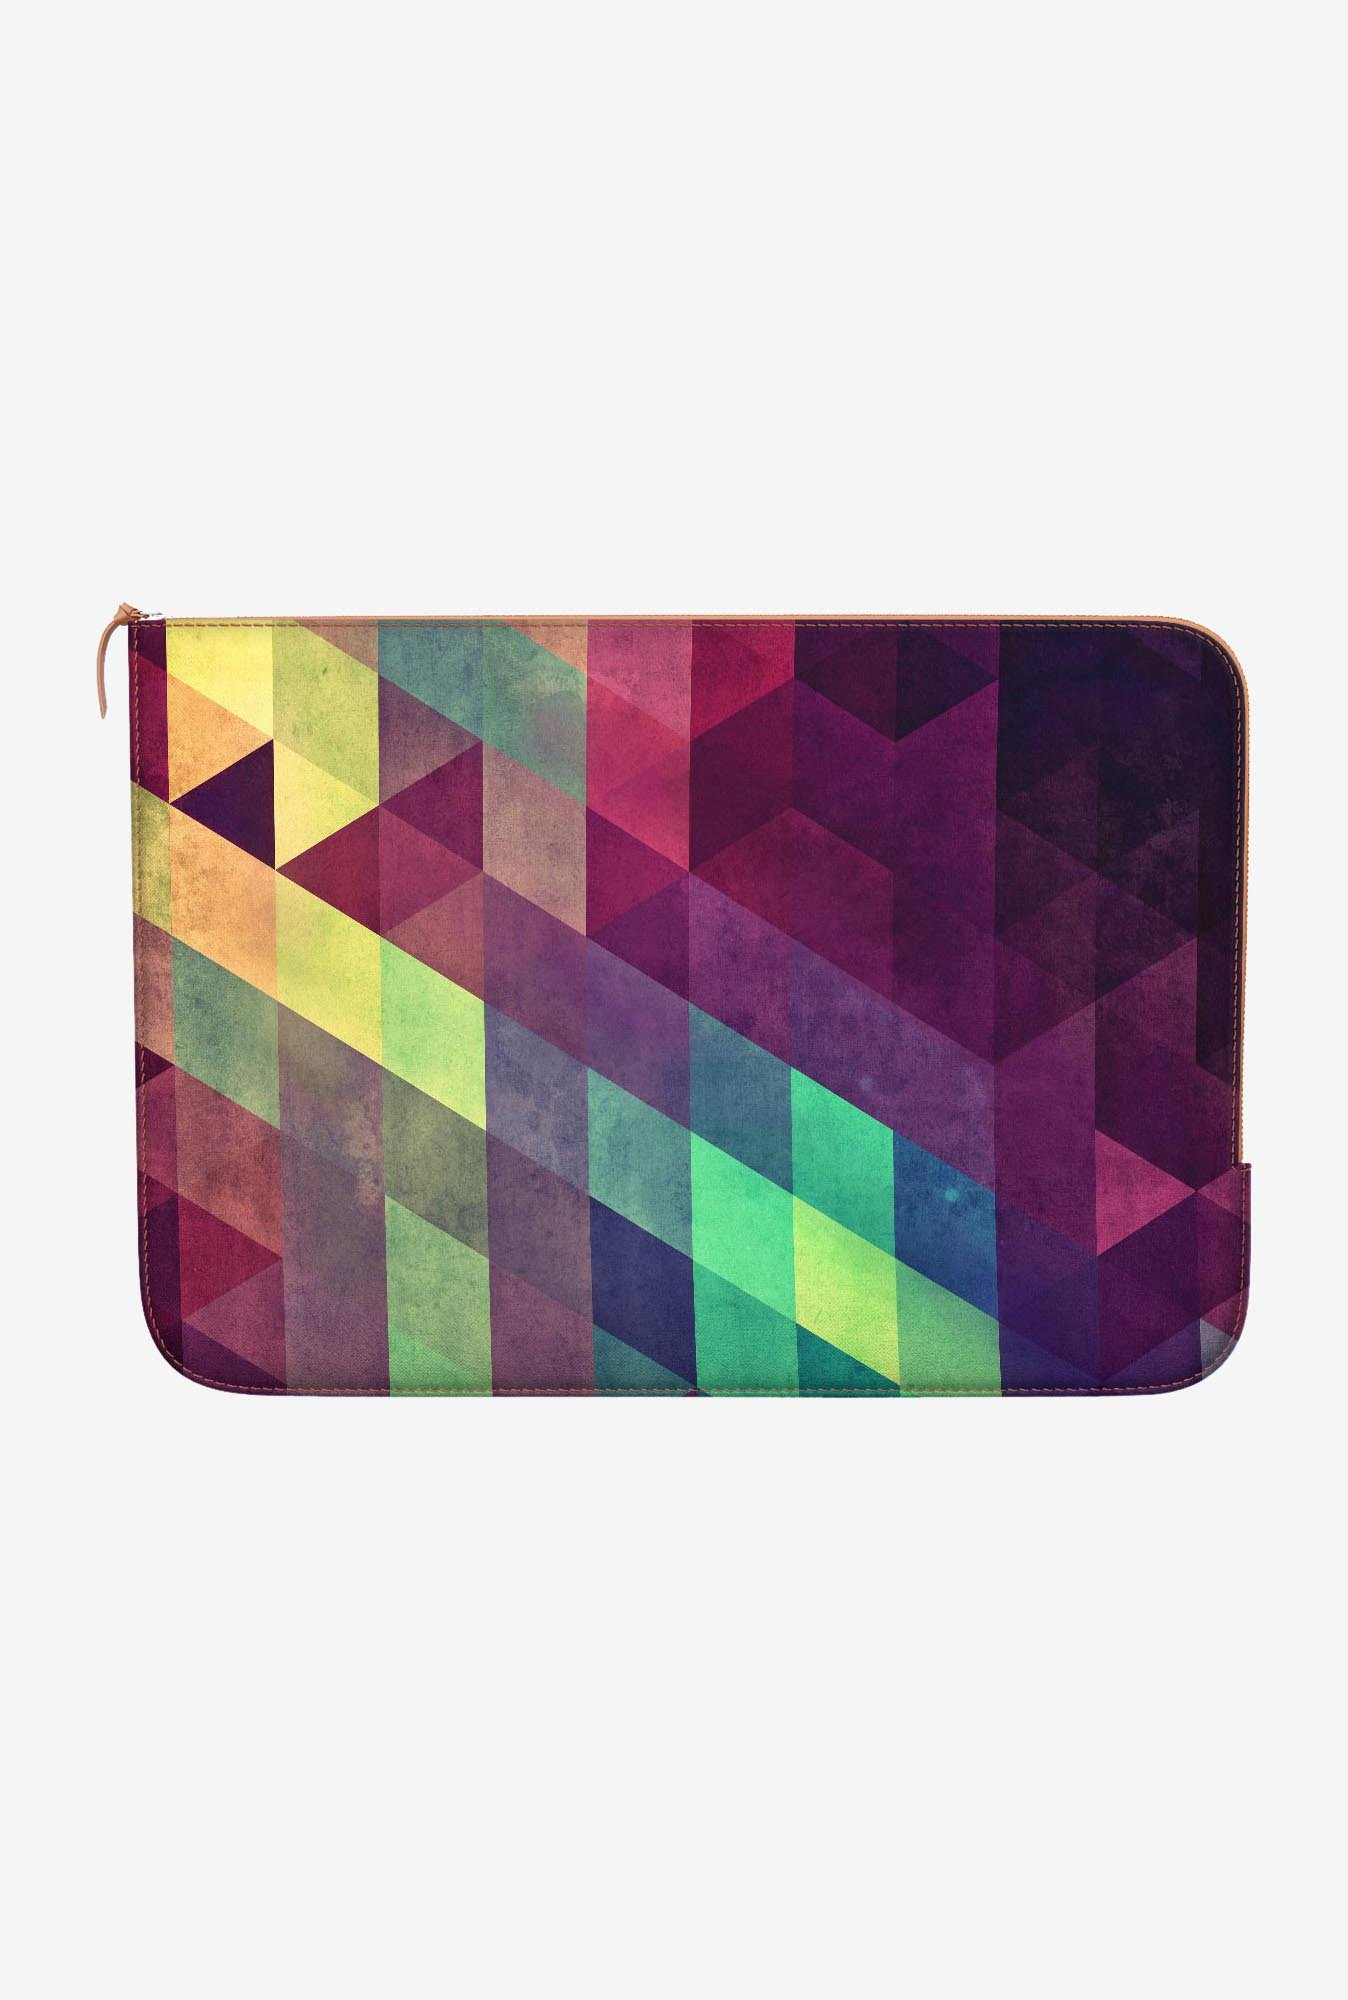 DailyObjects Vynnyyrx Hrxtl MacBook Pro 15 Zippered Sleeve